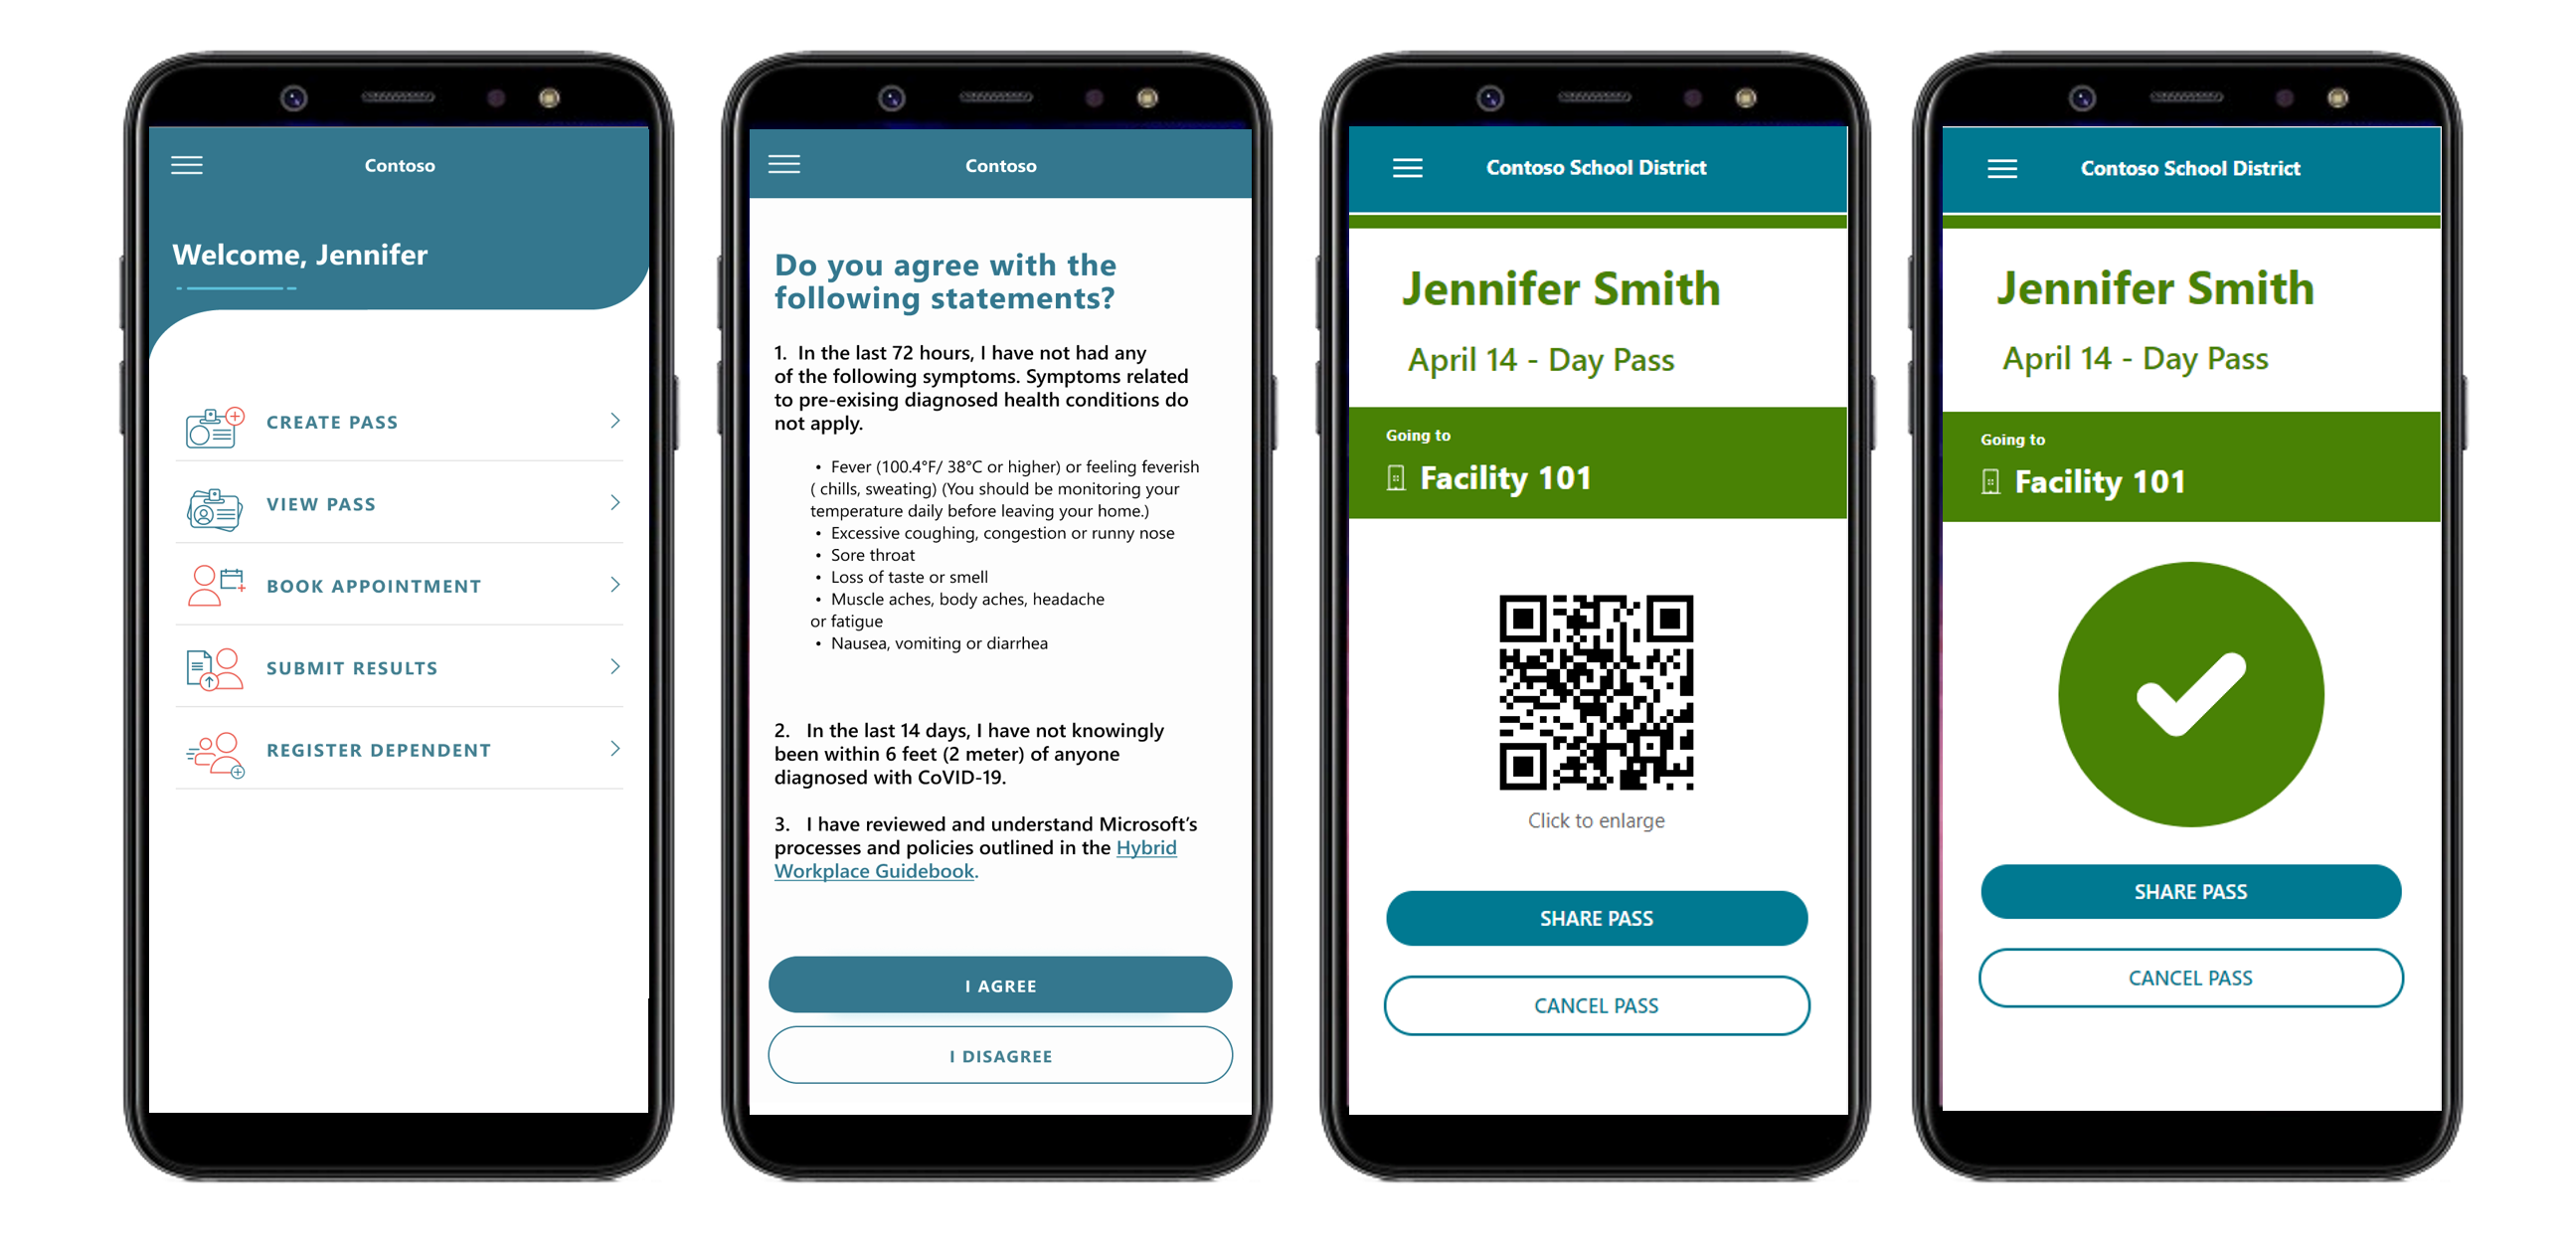 """Using the faculty and student portal, students, teachers, and staff can attest to being symptom-free, and receive a personalized """"day pass"""" that can be used for school entry. Guardians can attest on behalf of their dependents."""